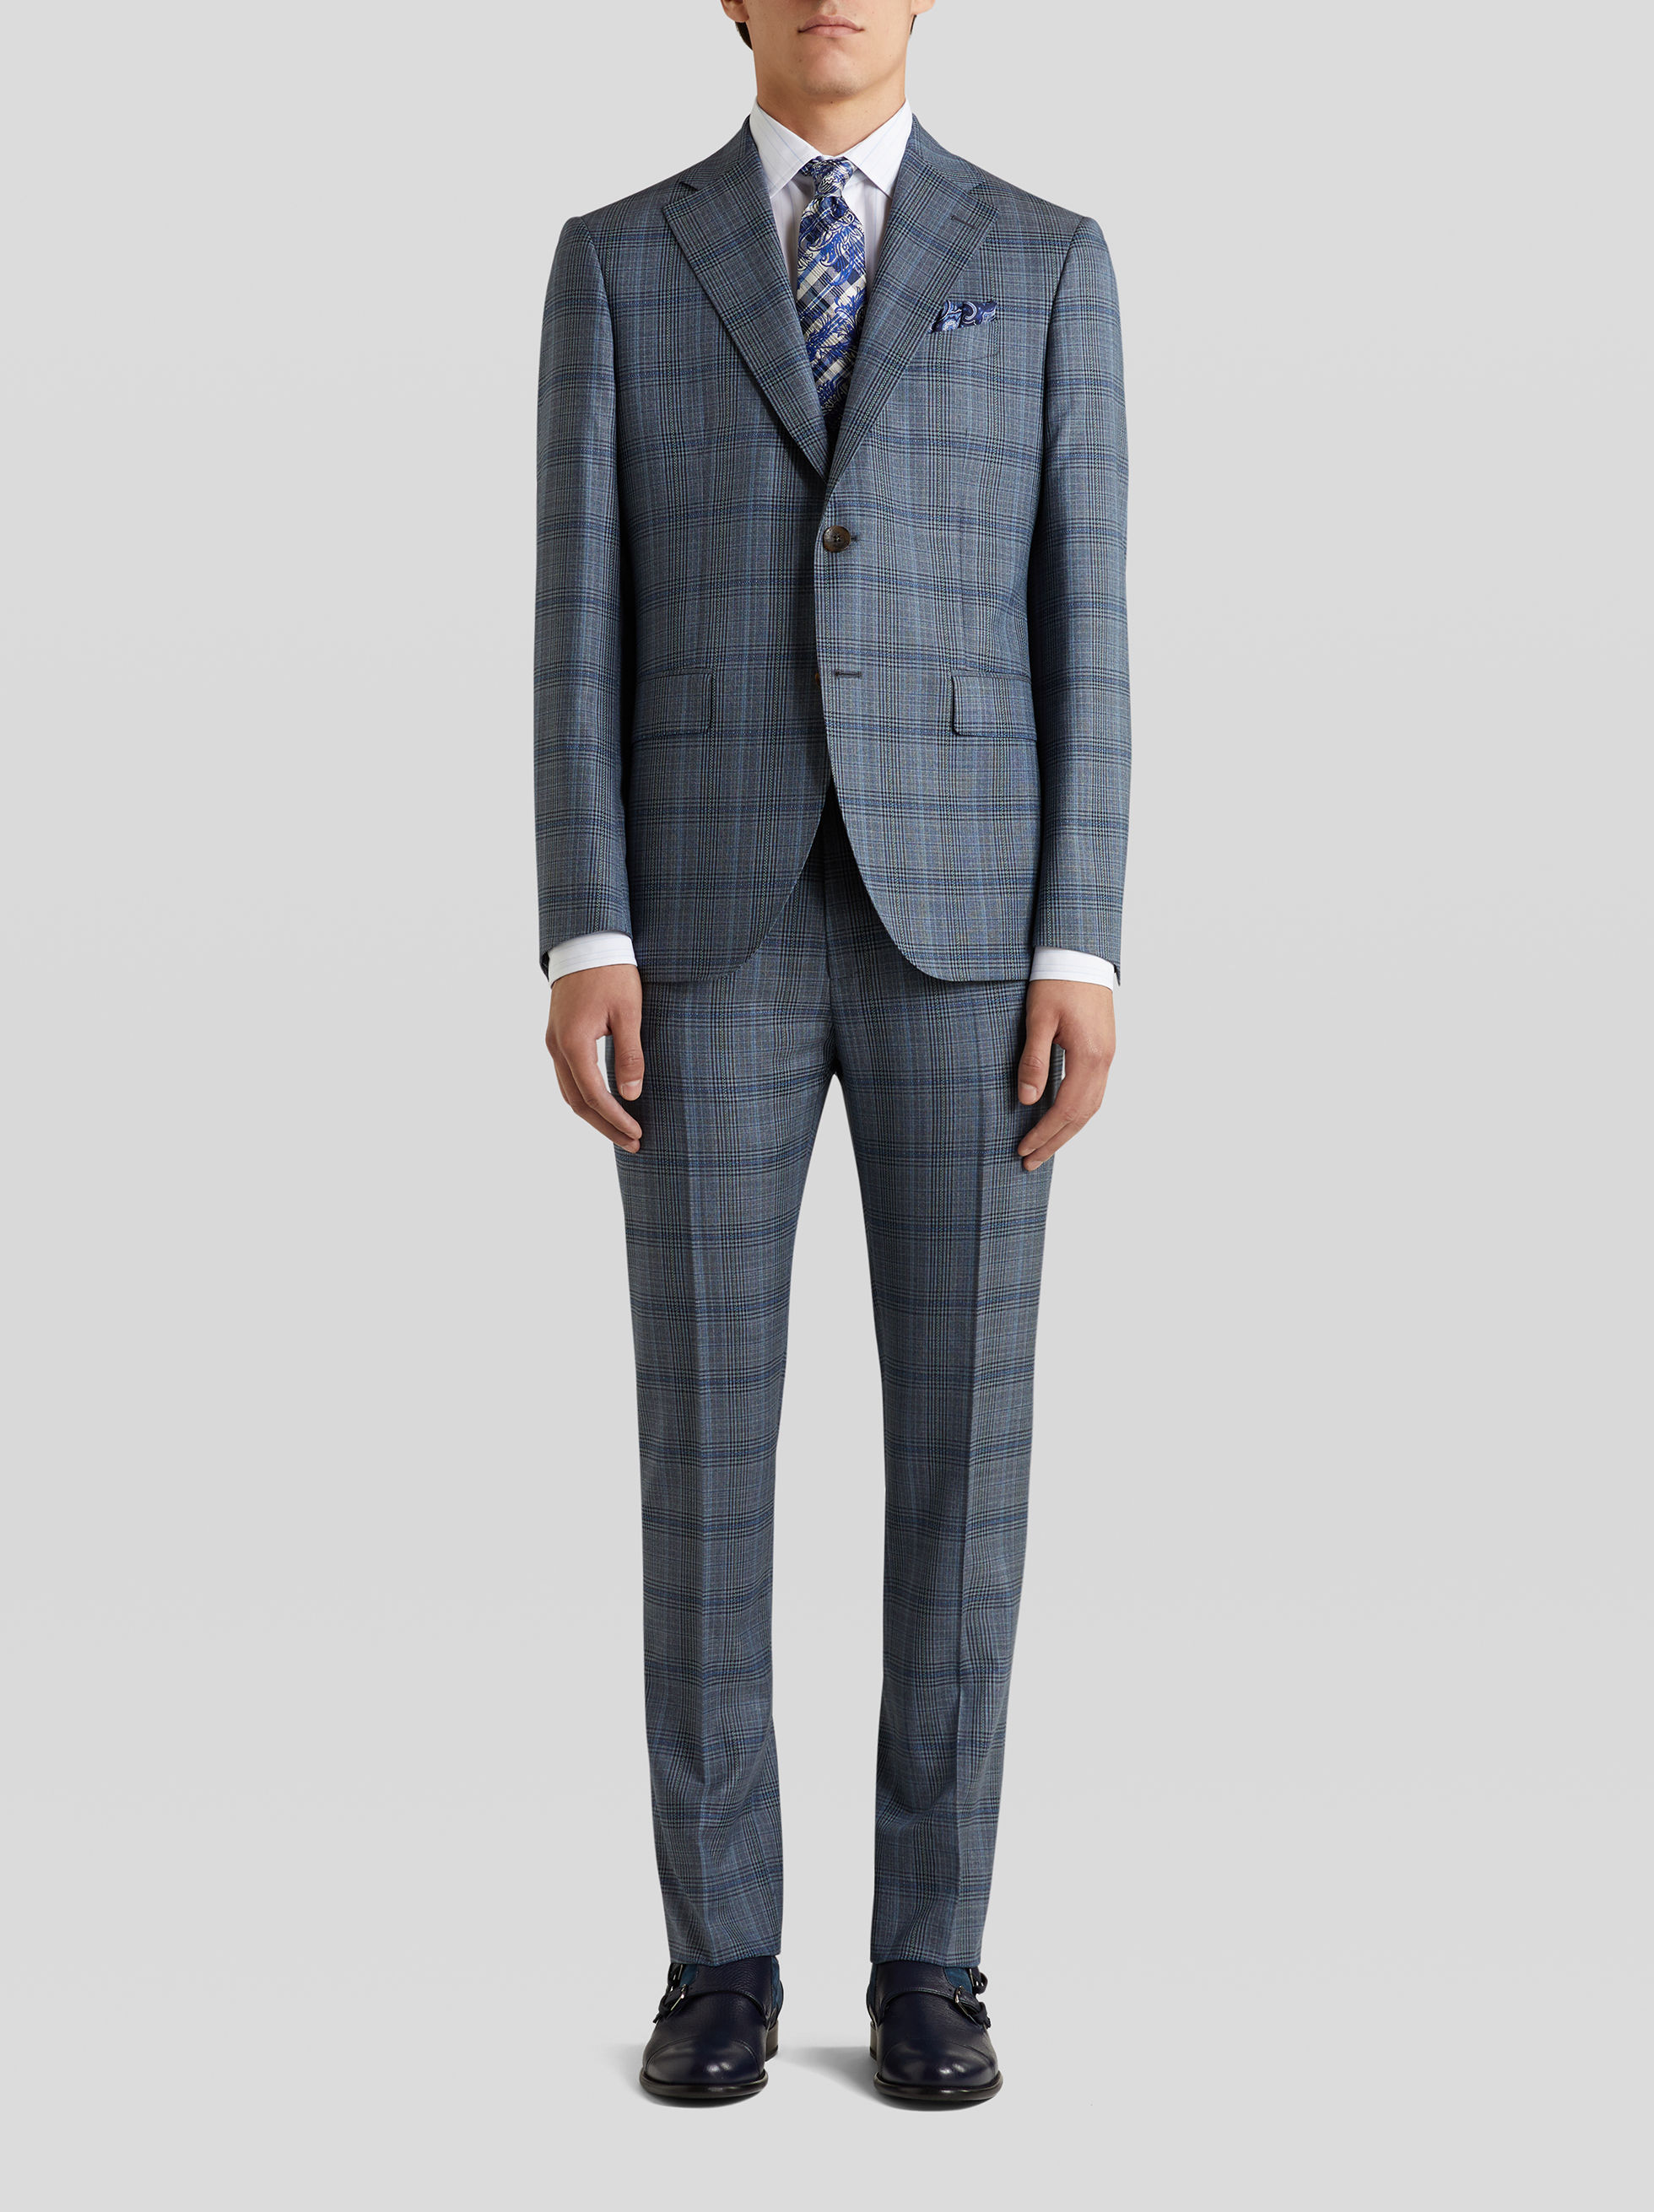 TAILORED SUIT WITH CHECK DESIGN